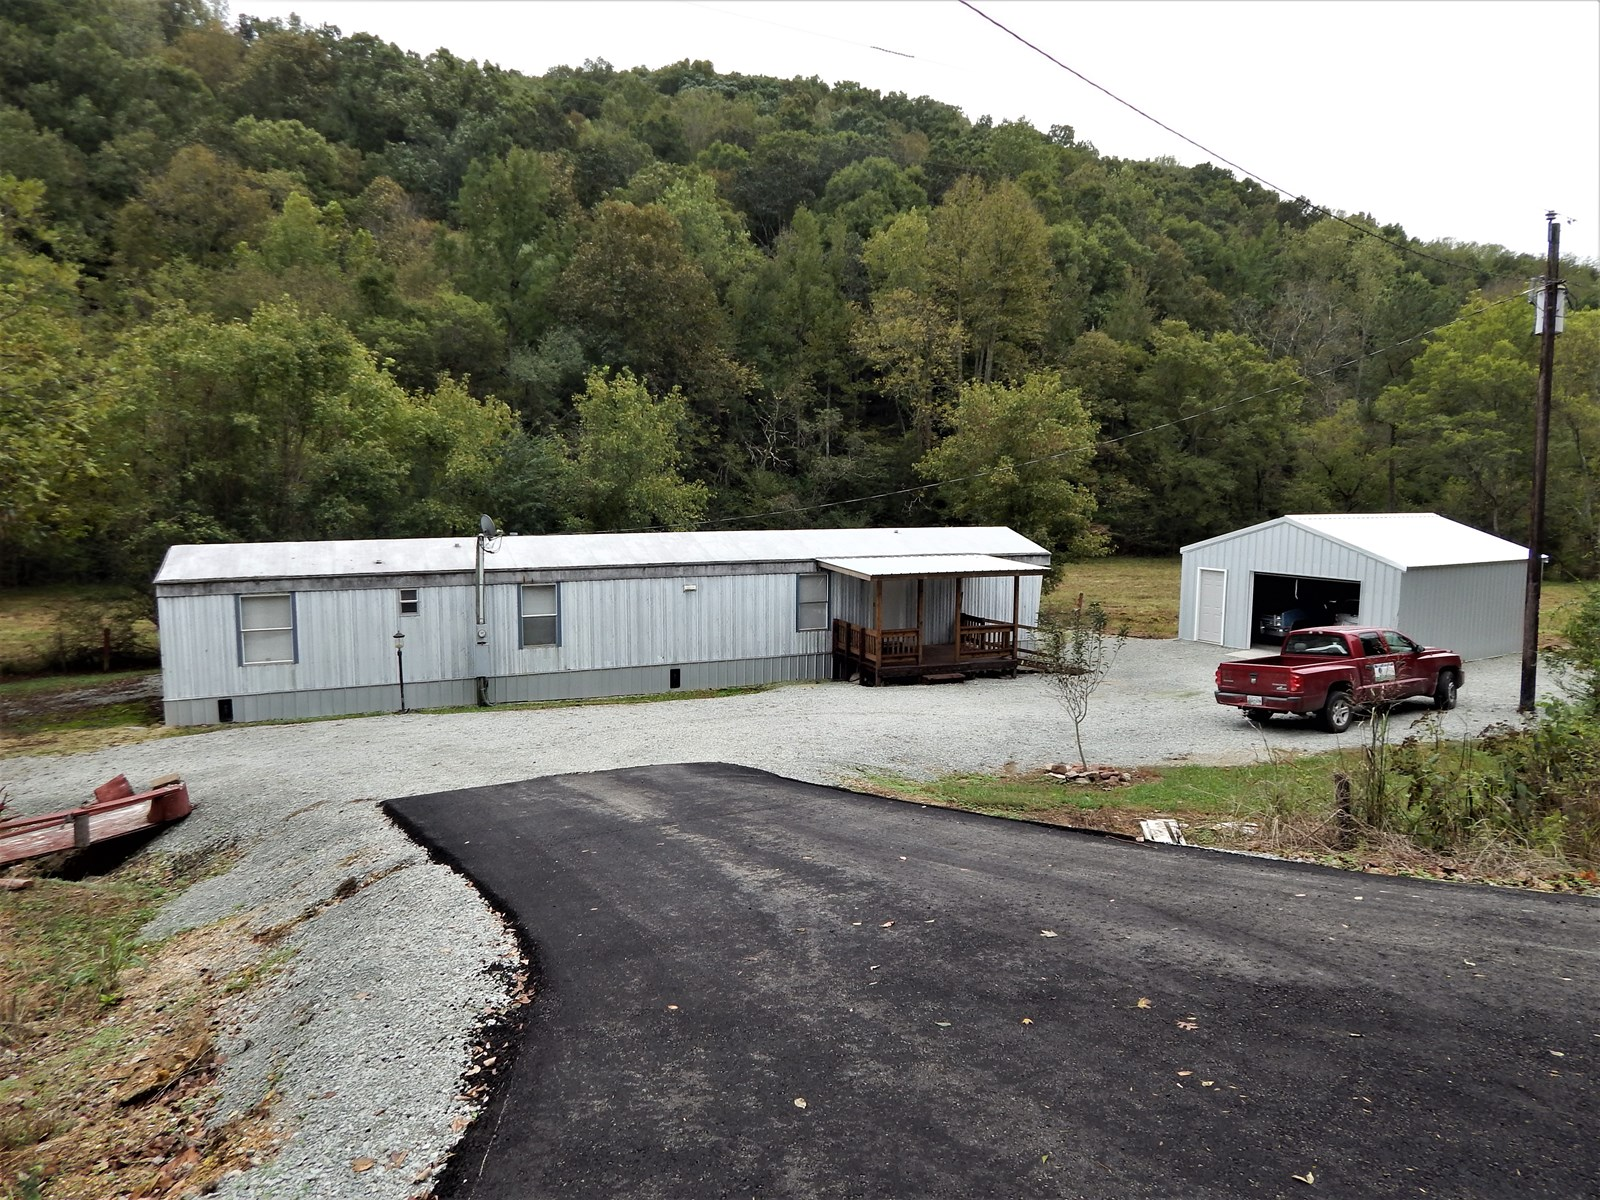 SALE PENDING! TN COUNTRY MOBILE HOME, 2.03 ACRES AND A CREEK